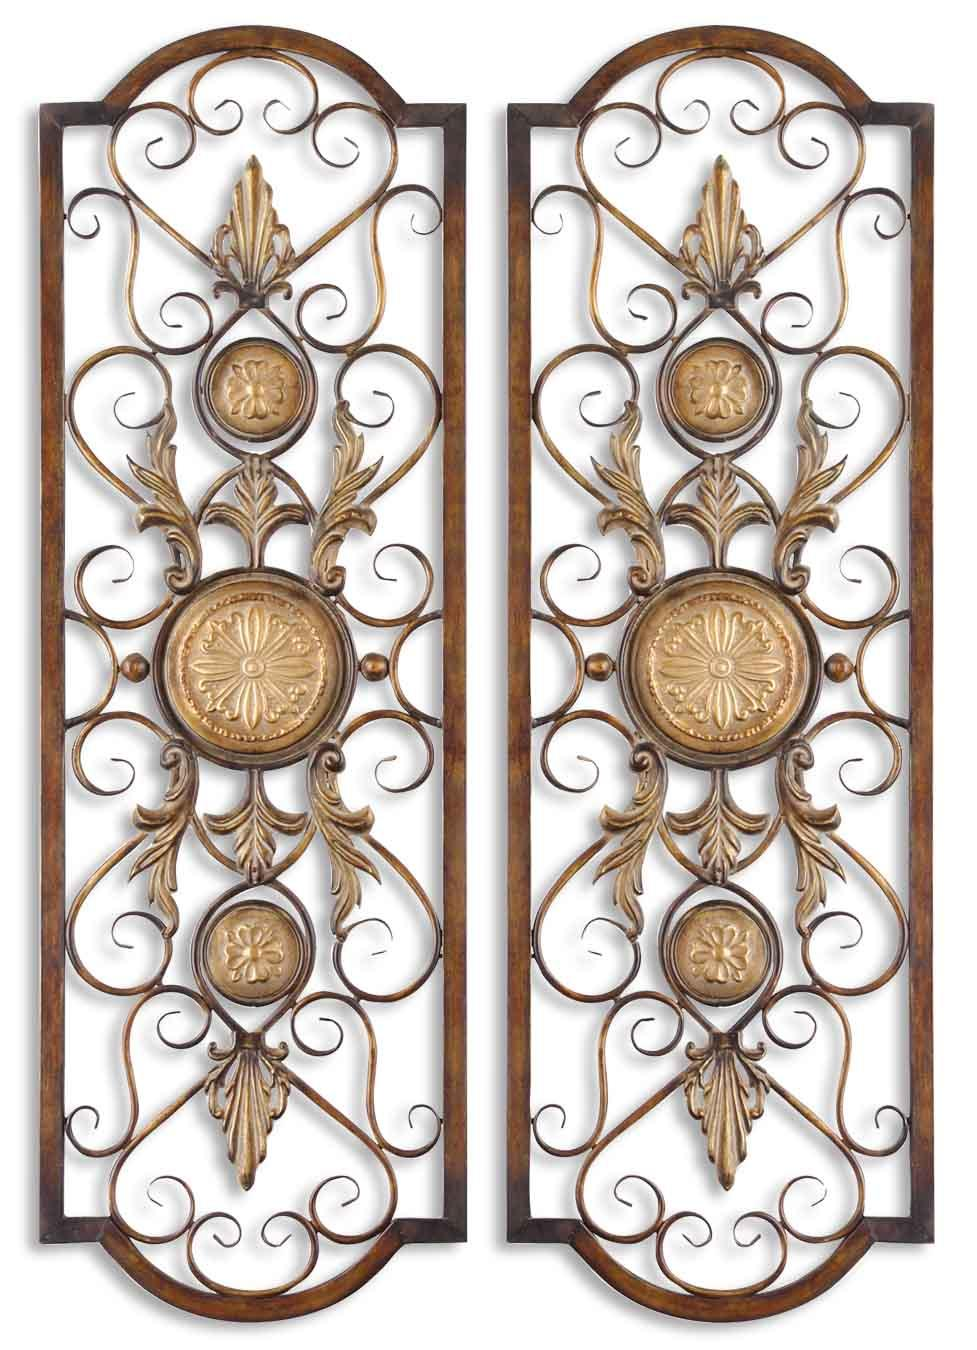 Uttermost Alternative Wall Decor Micayla Panels Set of 2 - Item Number: 13475